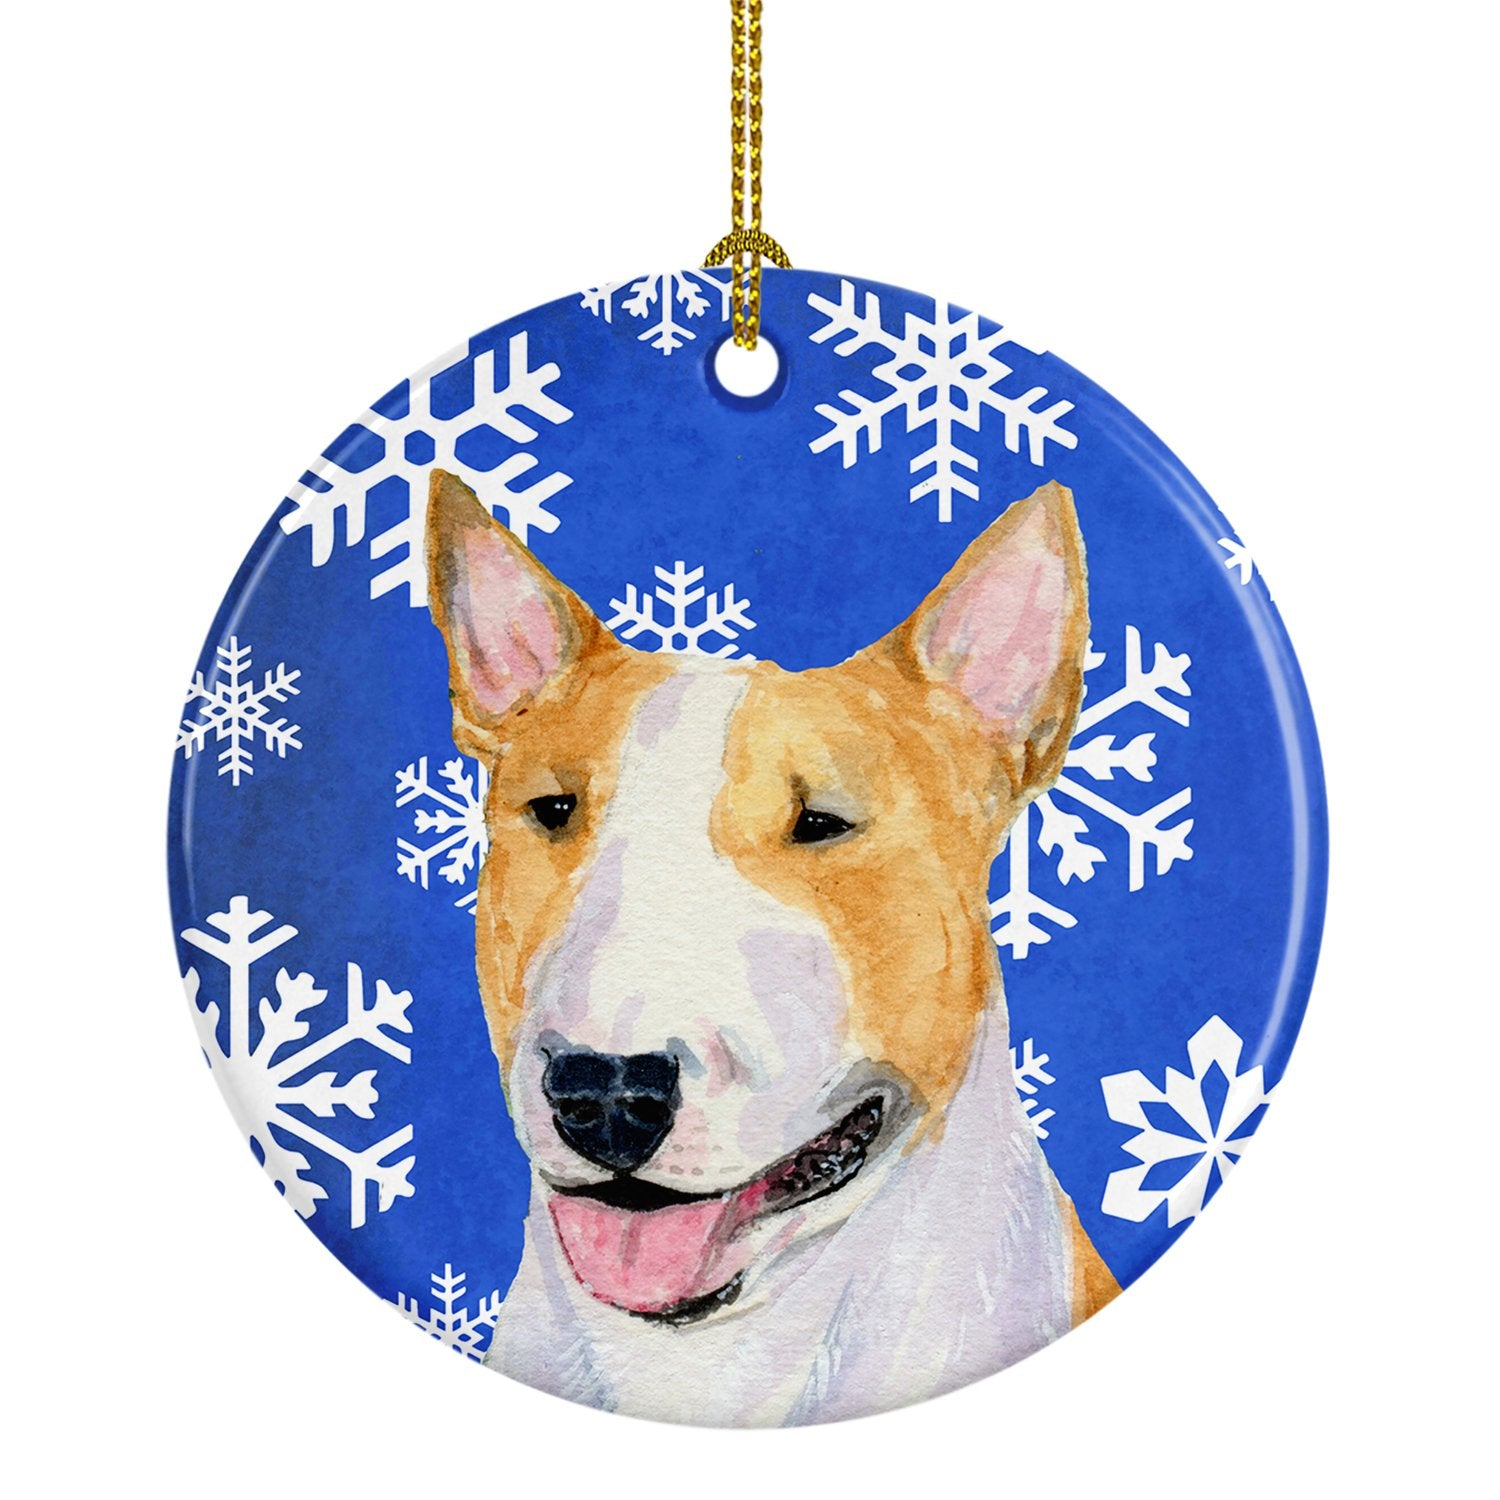 Bull Terrier Winter Snowflakes Holiday Christmas Ceramic Ornament SS4634 by Caroline's Treasures